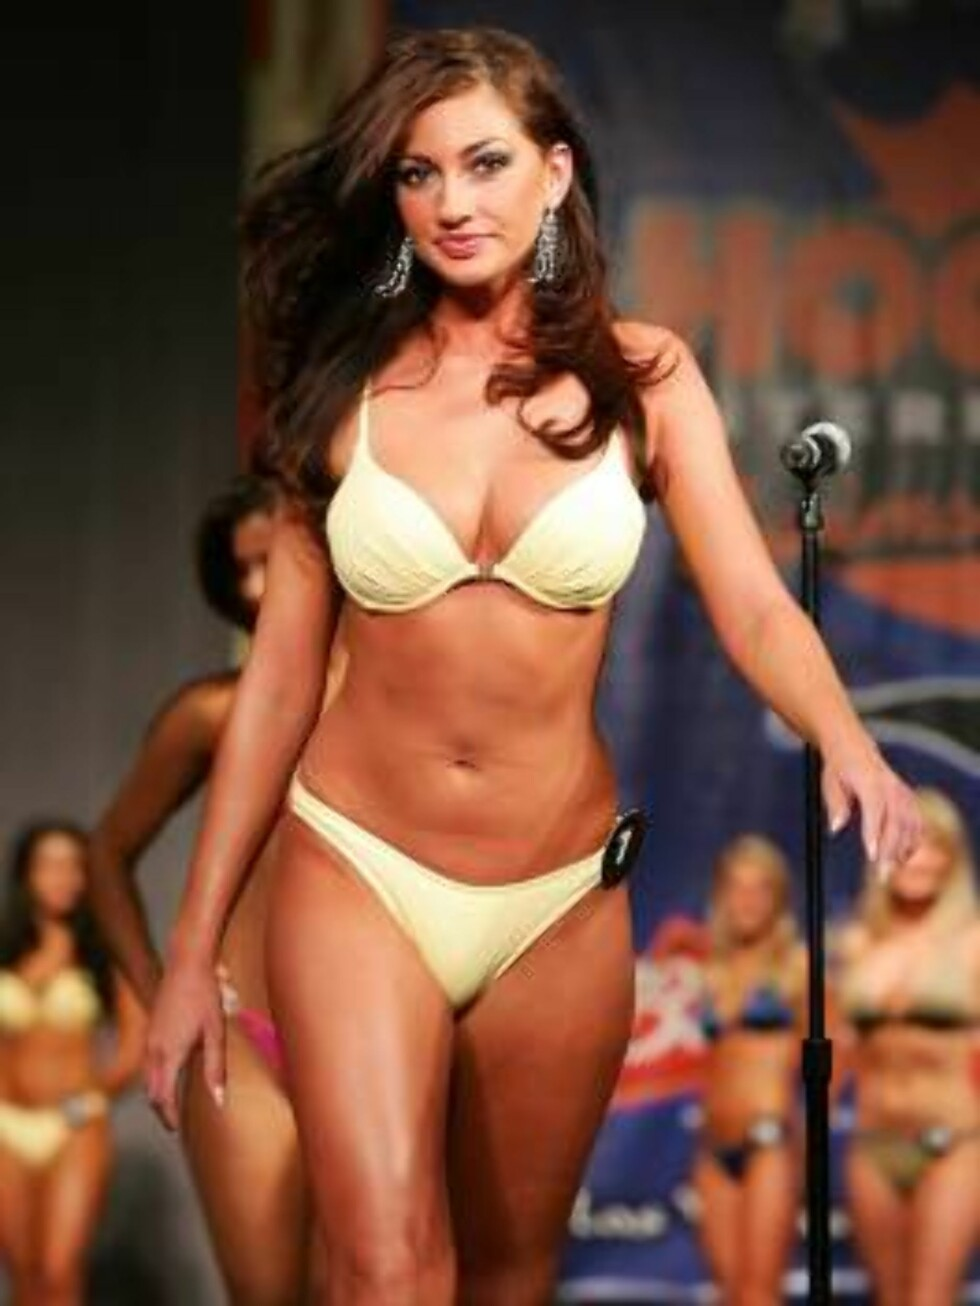 <strong>LAS VEGAS - JULY 24:</strong>  Alison Clay of Ohio competes in a preliminary preview of the 10th annual Hooters International Swimsuit Pageant at the Aladdin Casino & Resort June 24, 2006 in Las Vegas, Nevada. Over 120 Hooters girls who work in one of the company' Foto: All Over Press